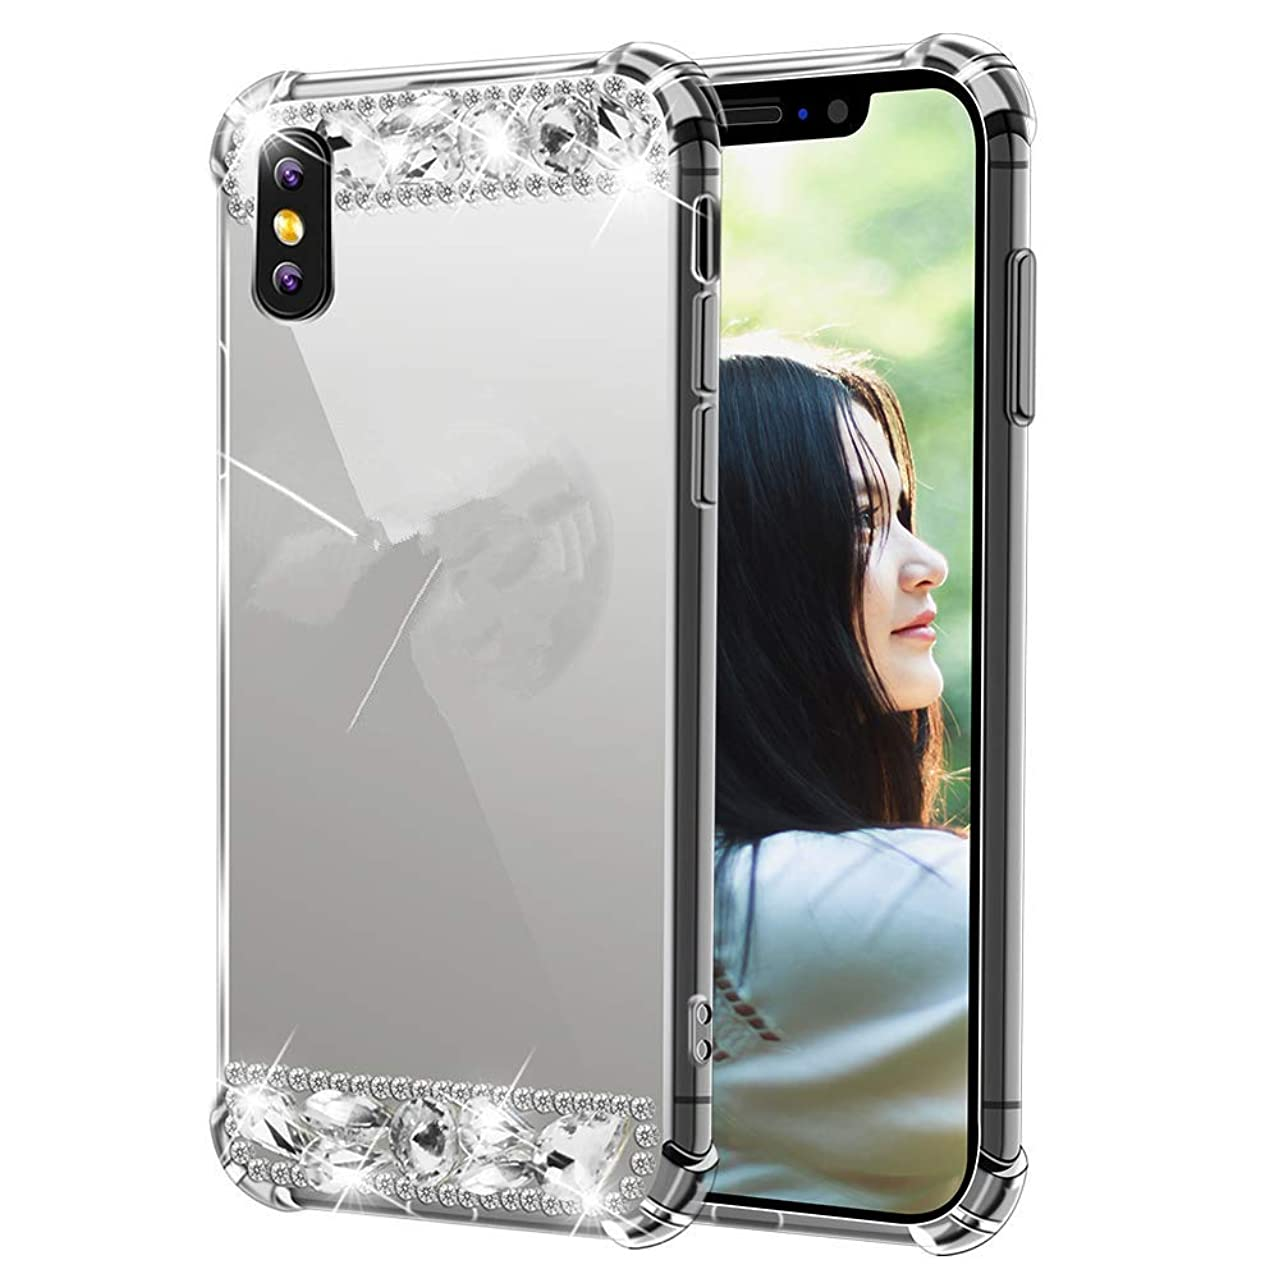 iPhone Xs Max Handmade Case-Aulzaju Luxury Bling TPU Mirror Cover for iPhone Xs Max Soft Slim Beauty Fashion Case with Ring Stand-Silver